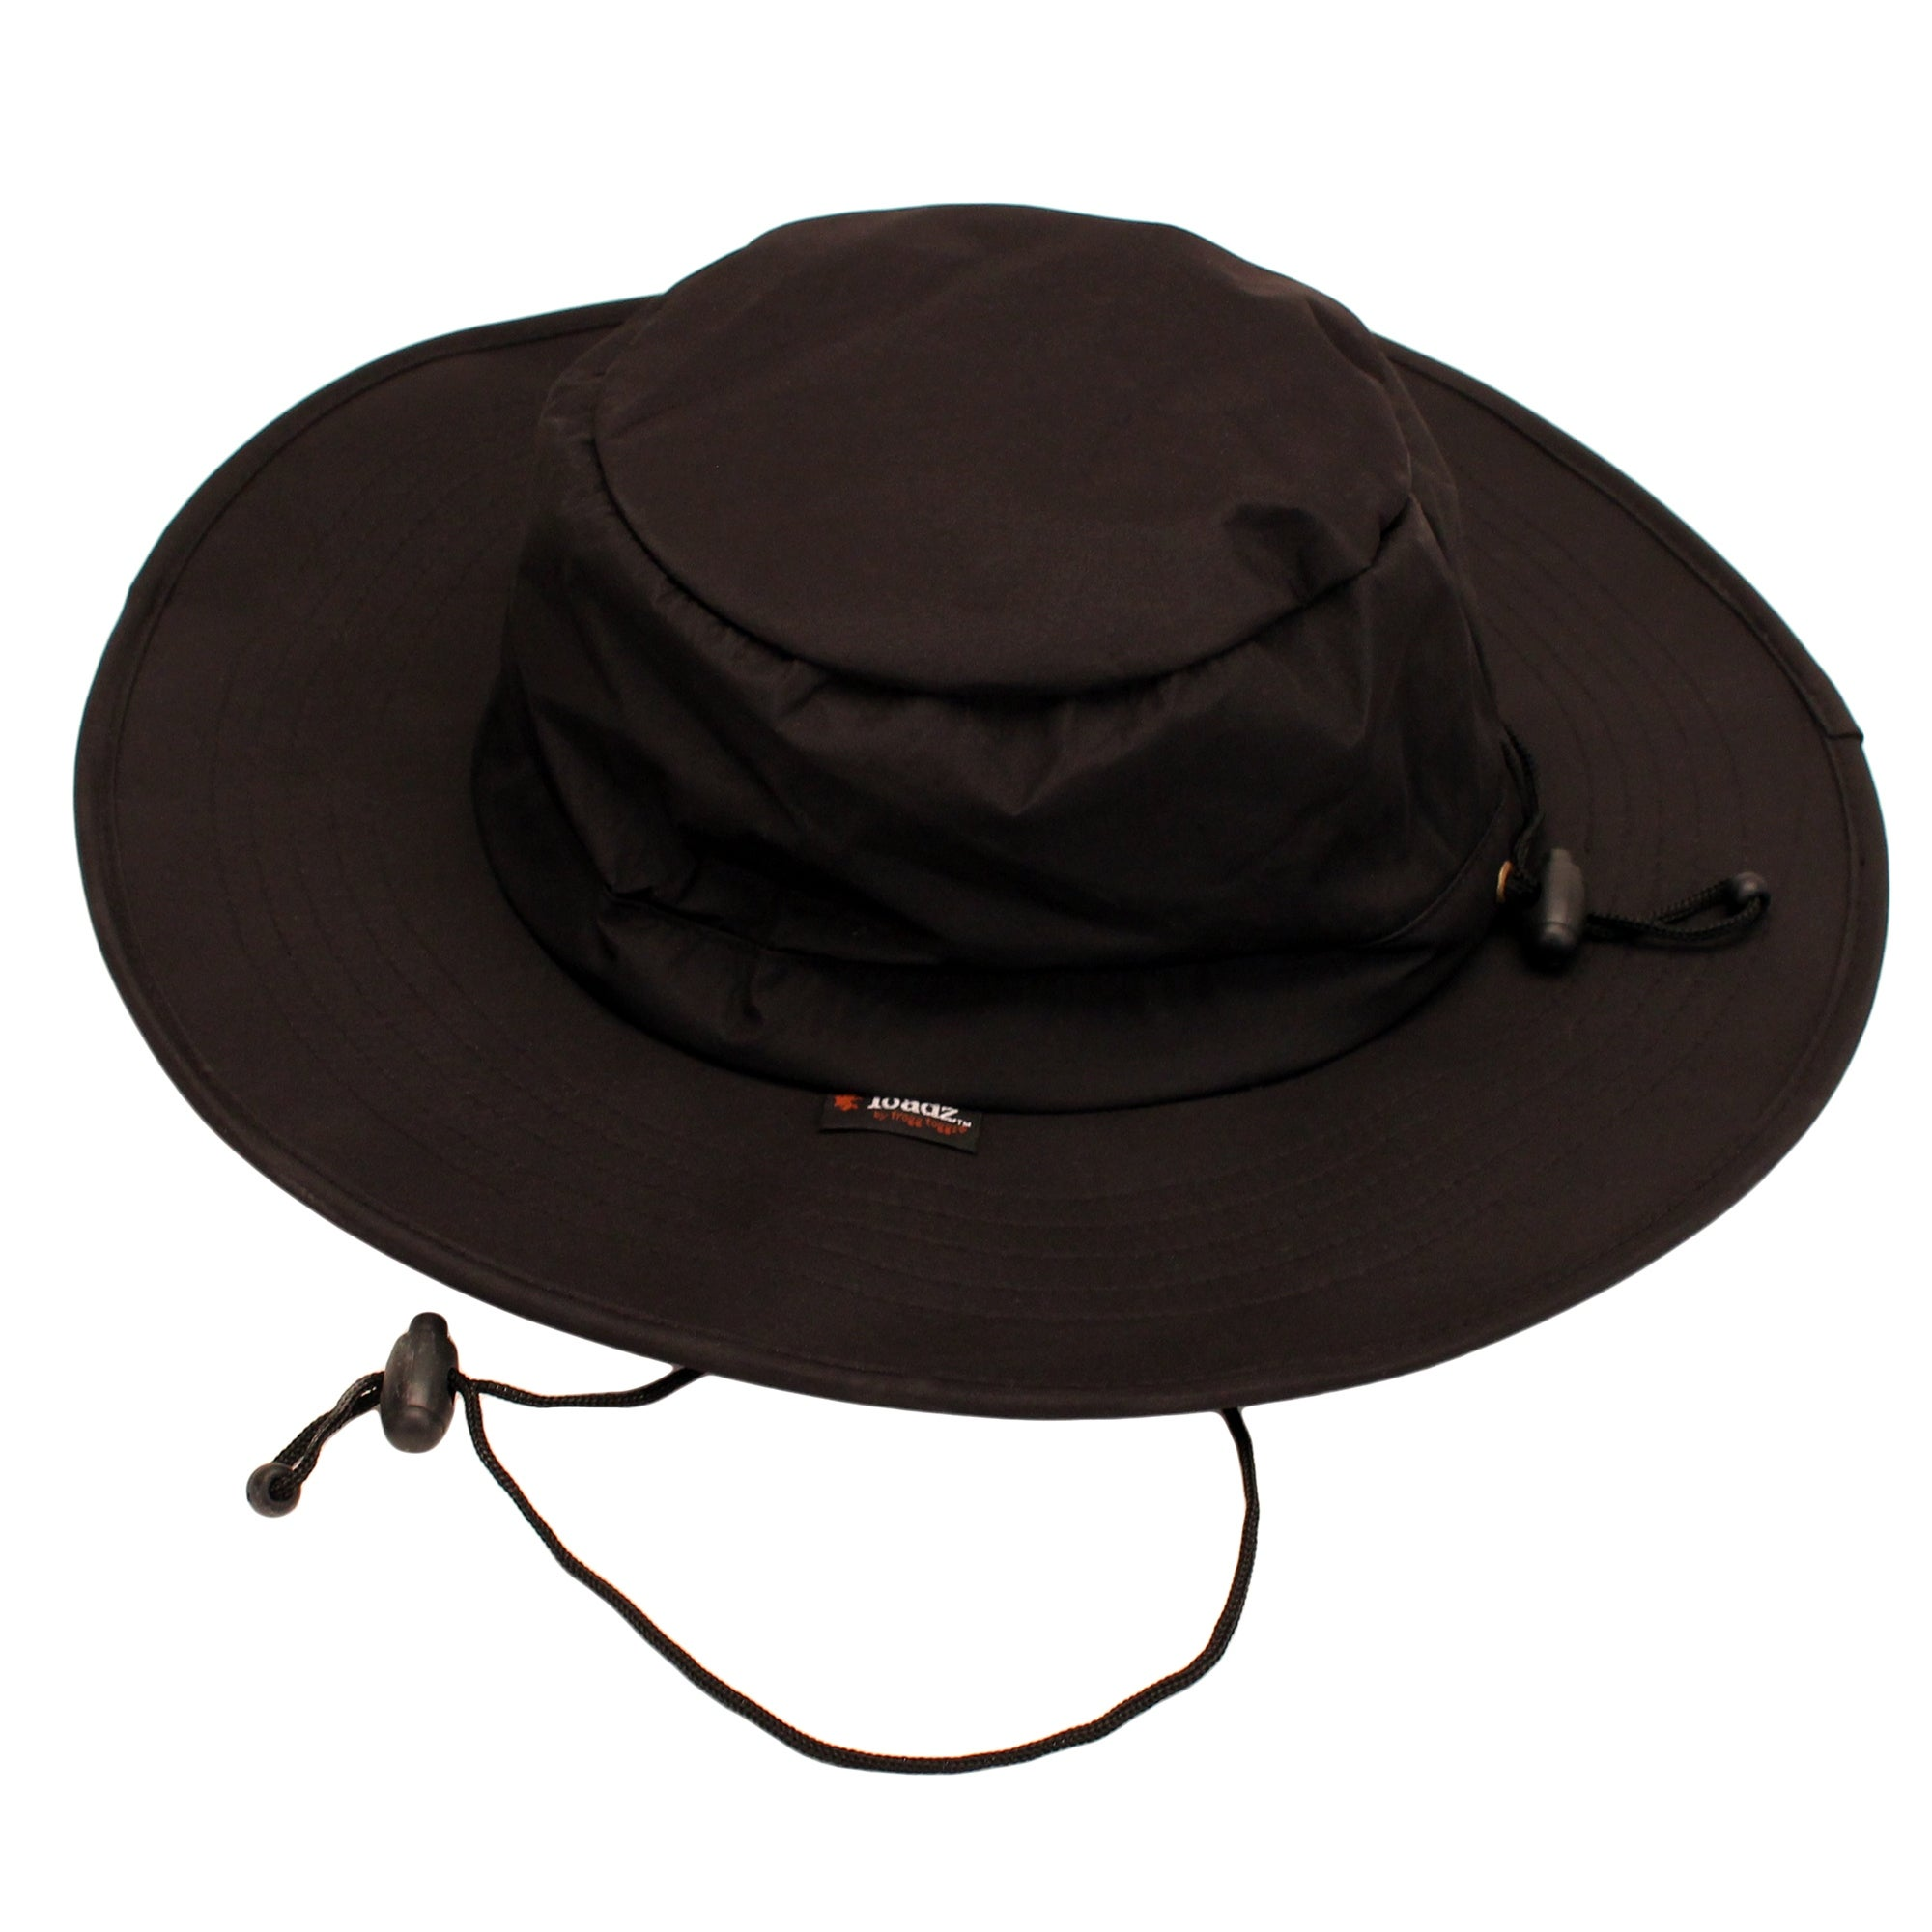 2b047c5ff025f Shop Frogg toggs nth103-01 frogg toggs nth103-01 toadz boonie hat black -  Free Shipping On Orders Over  45 - Overstock - 19210818